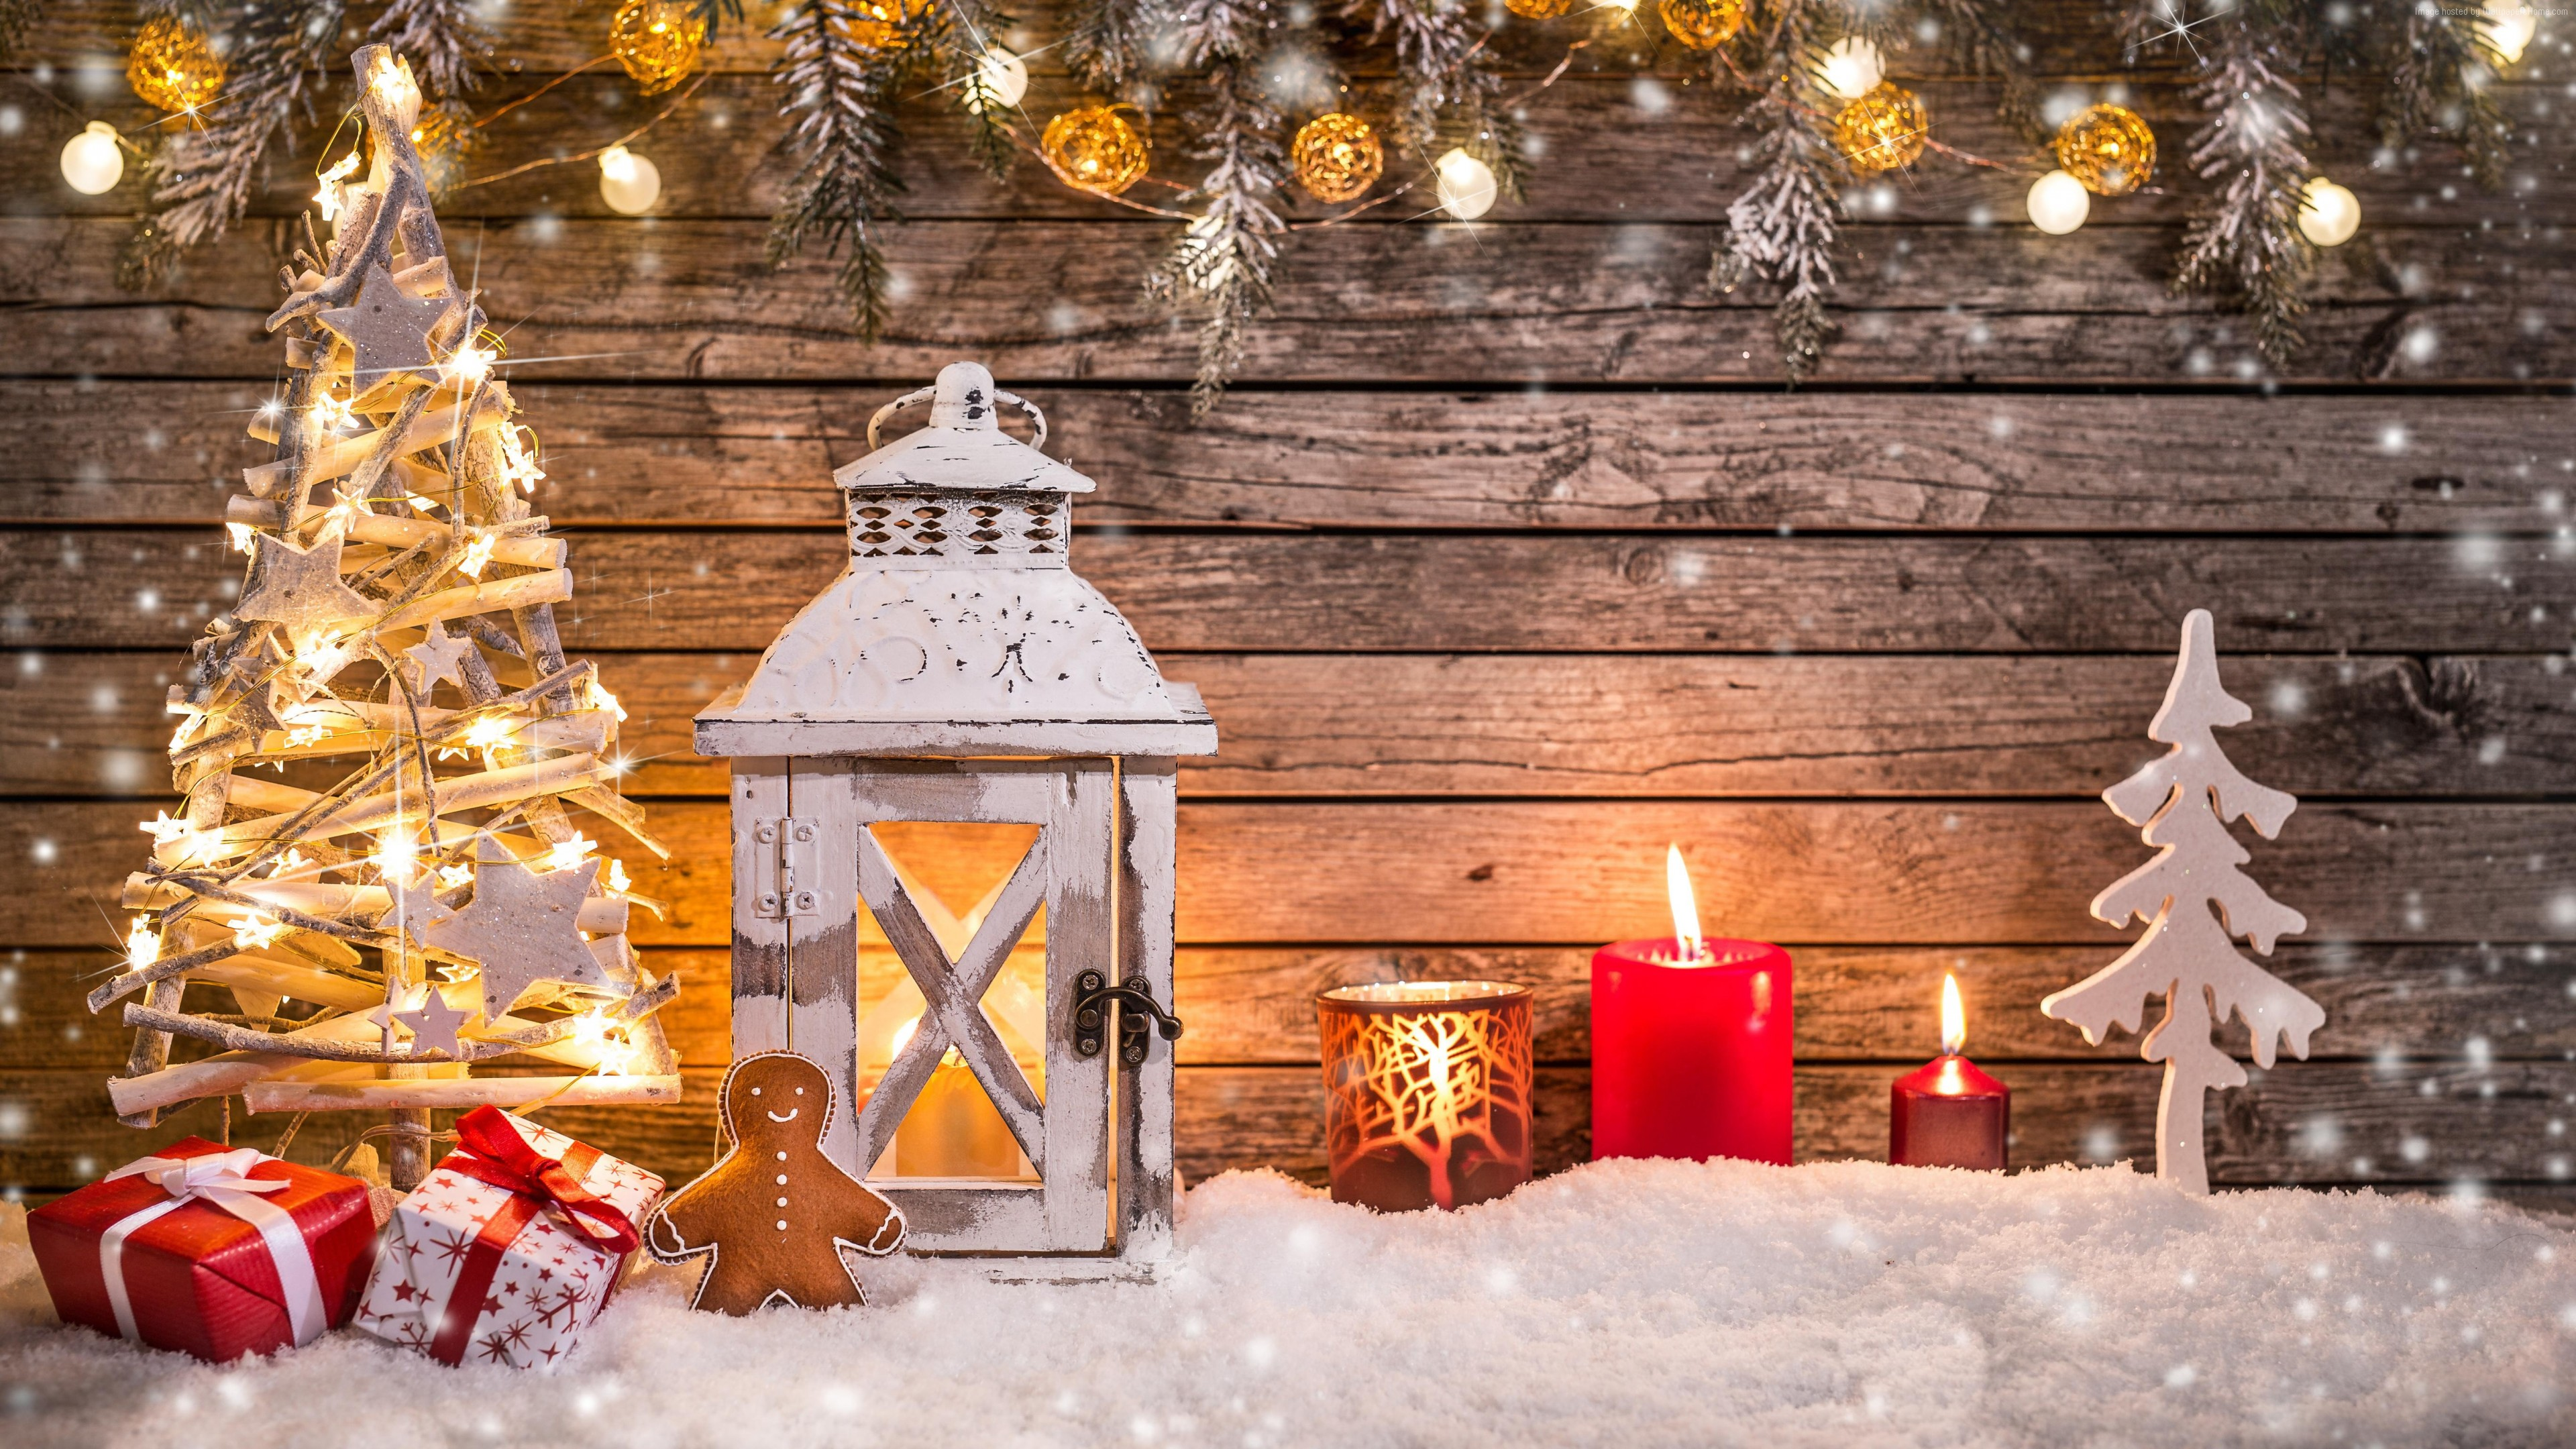 Wallpaper Christmas, New Year, toys, fir-tree, lamp, decorations, snow, 5k, Holidays